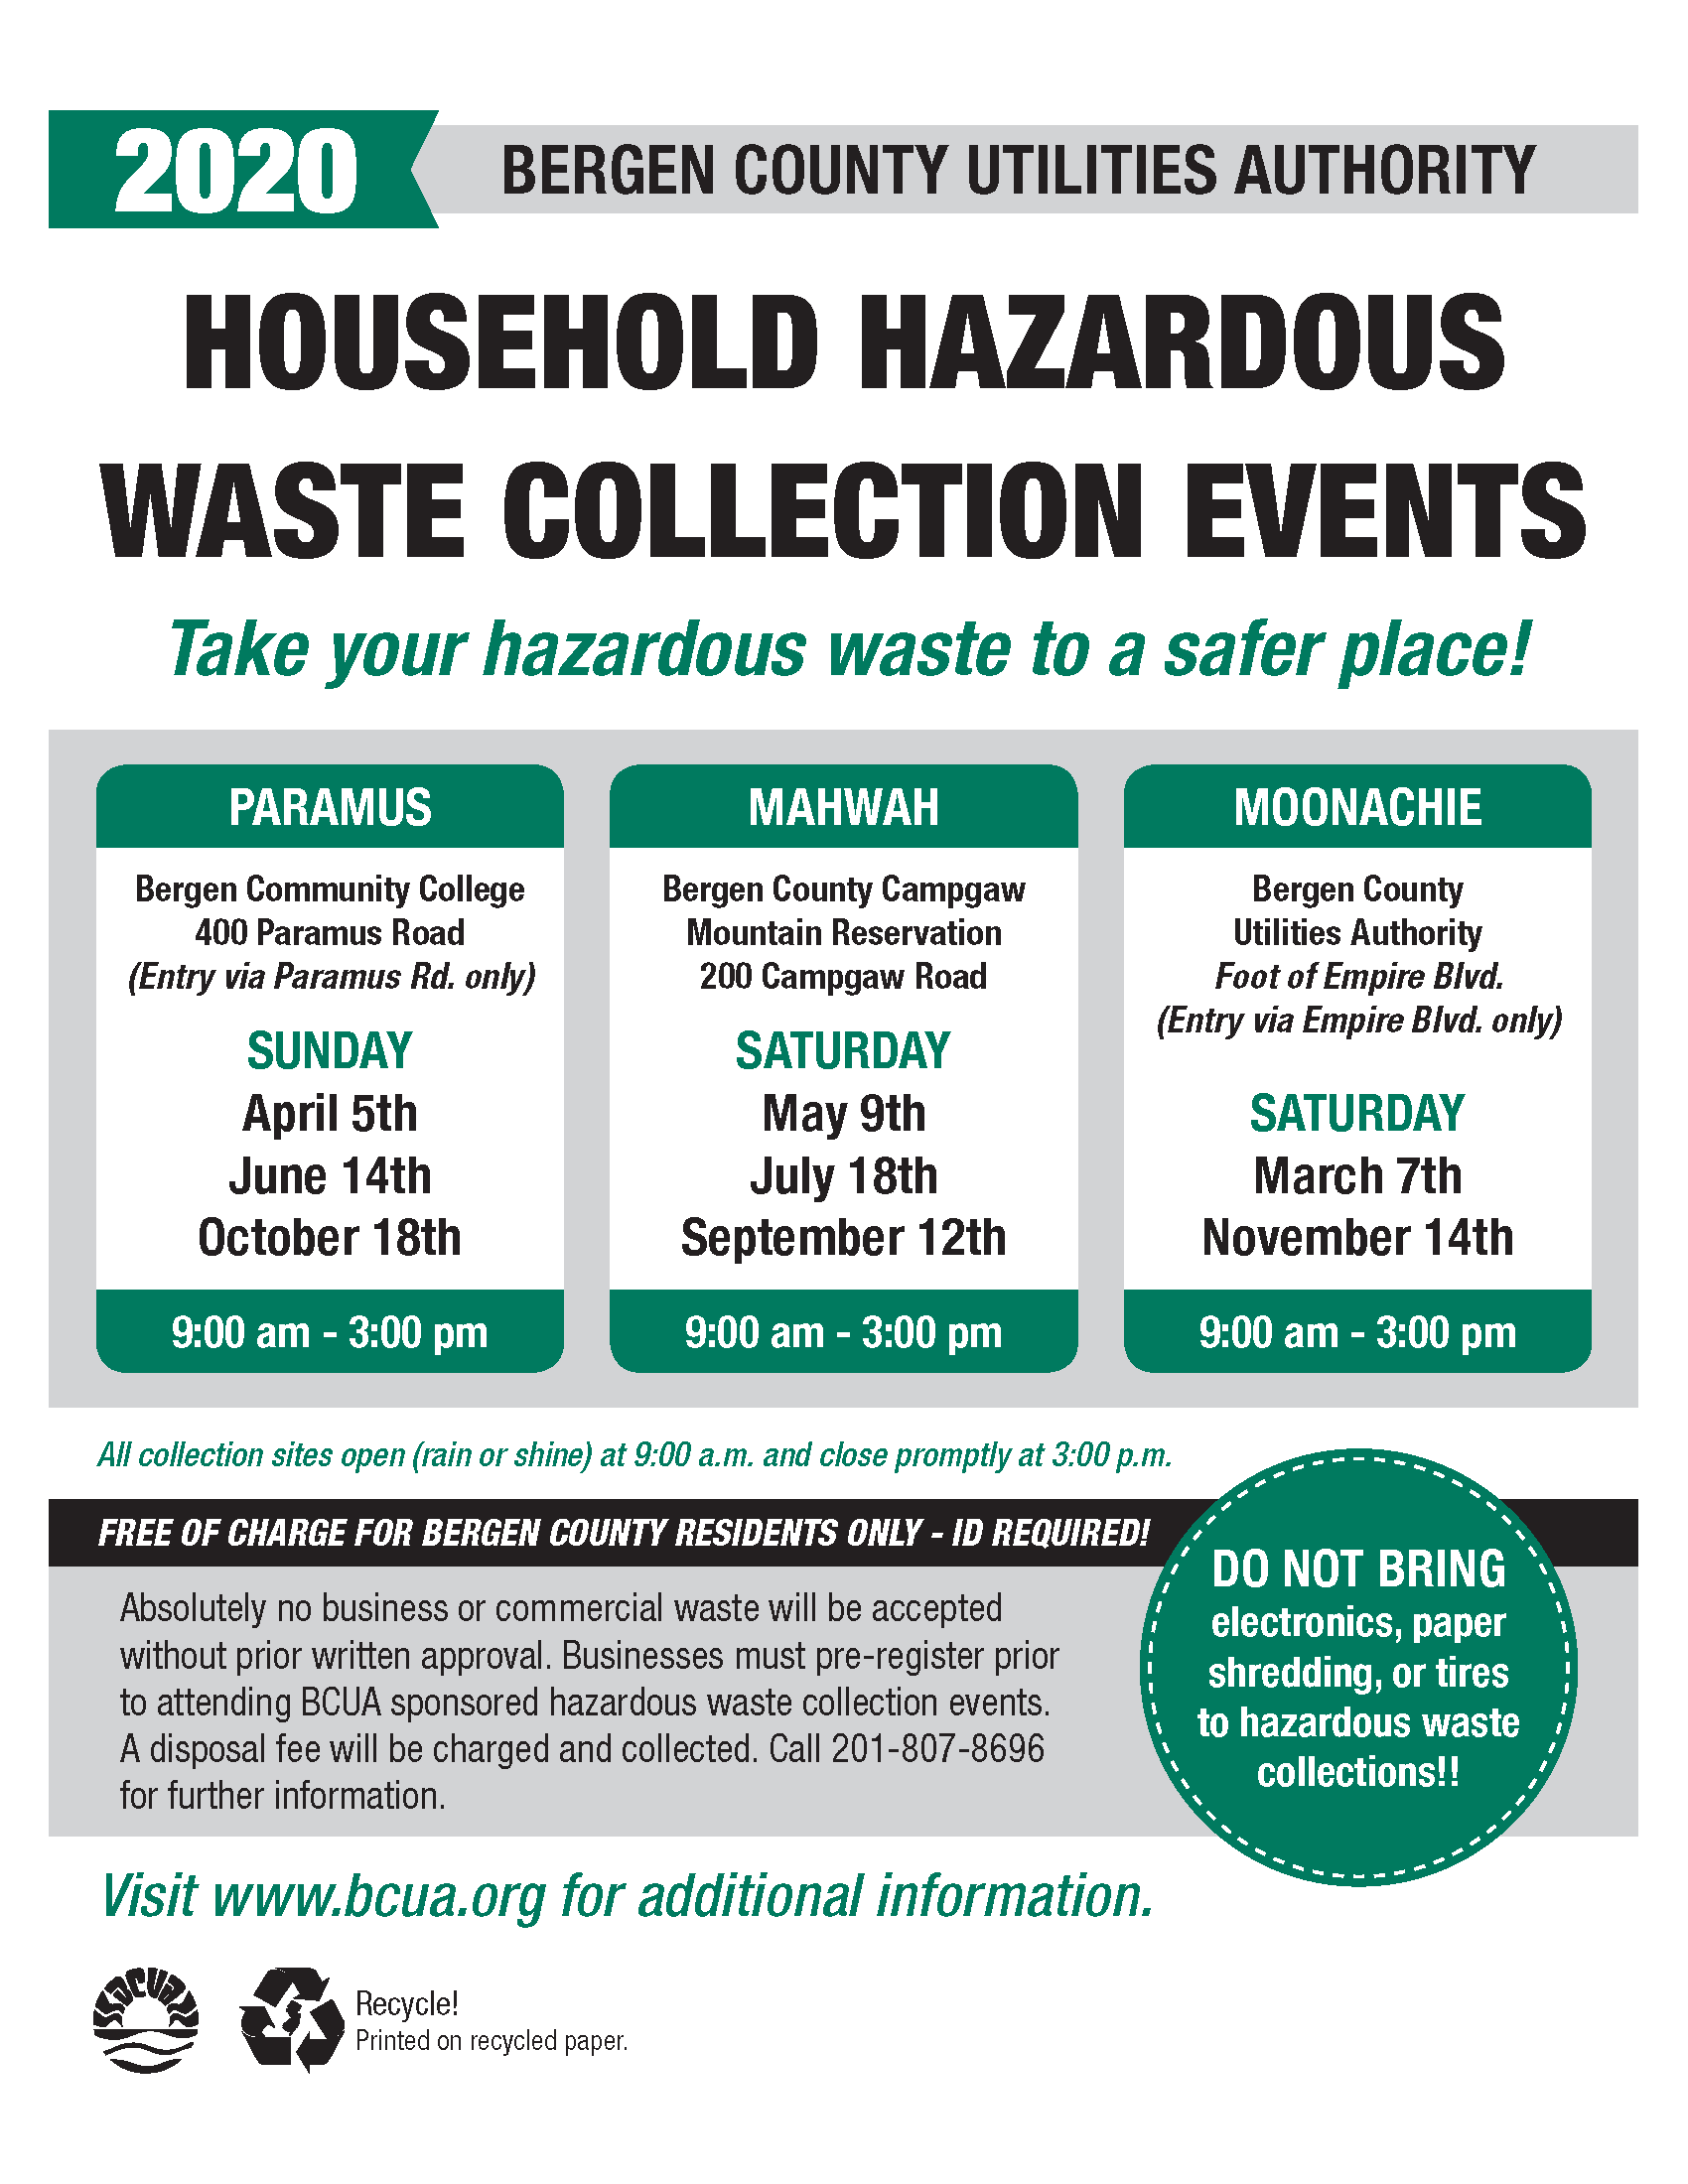 Bergen County Household Hazardous Waste Collection Dates 2020